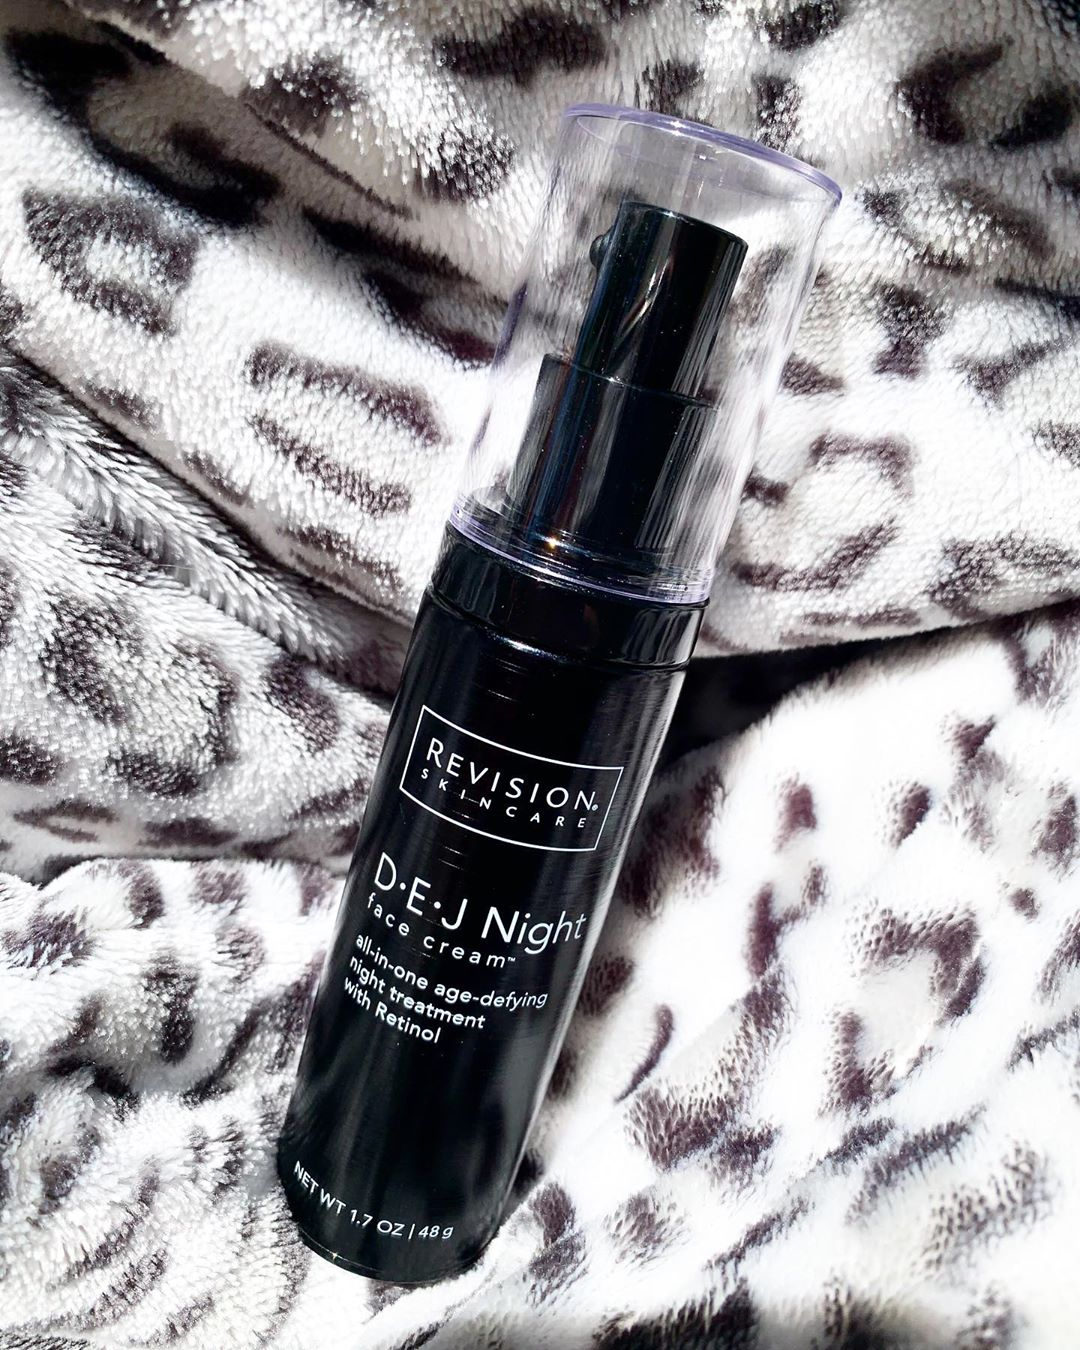 revision skincare dej night cream